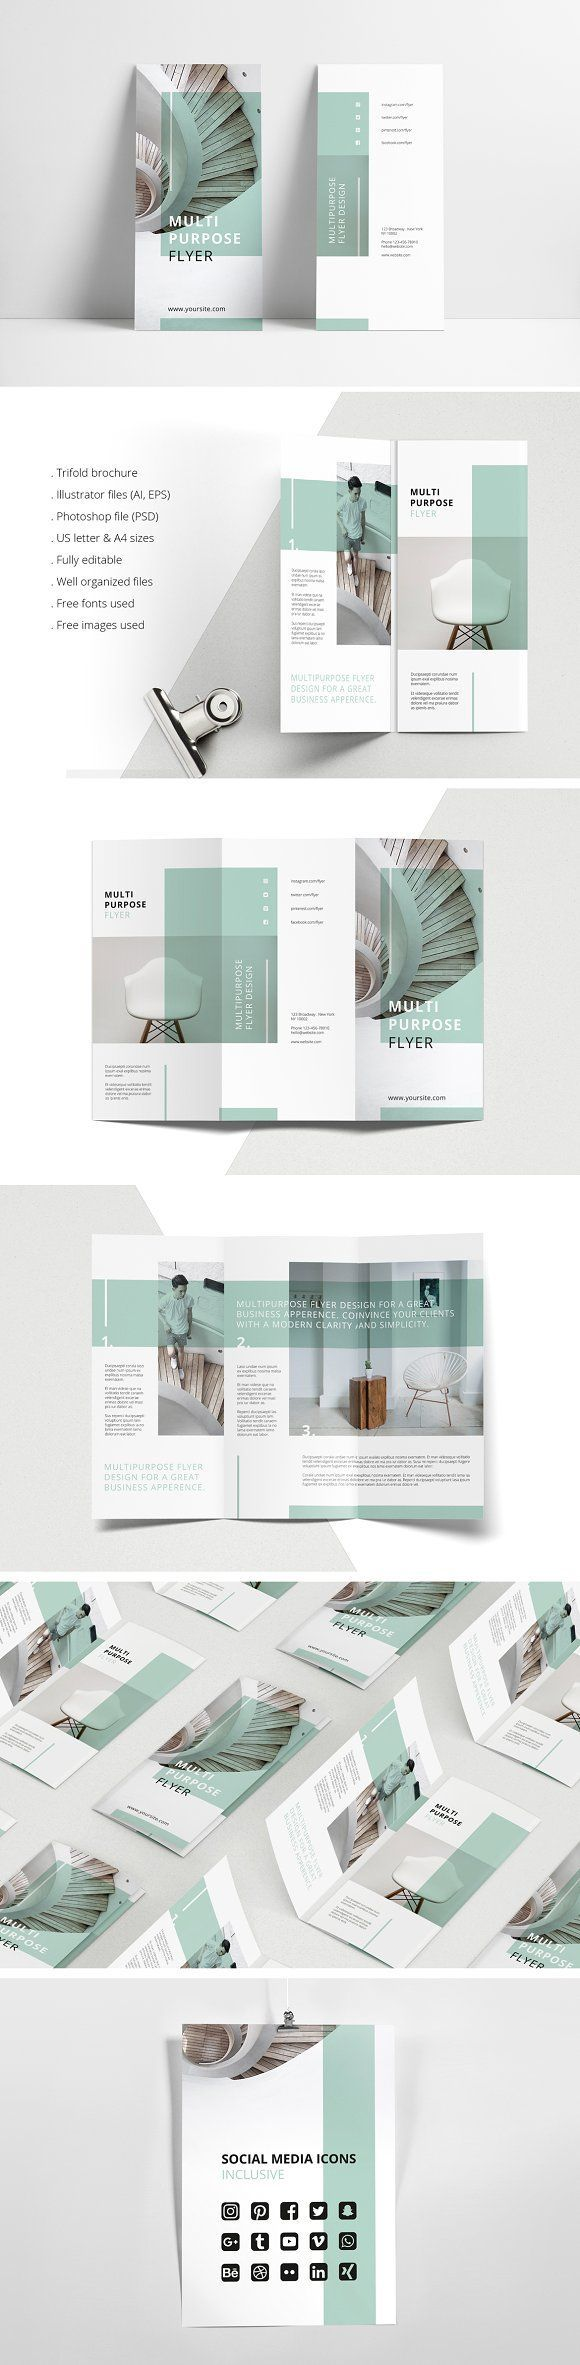 MINT Multipurpose Trifold Brochure by AgataCreate on @creativemarket Printing brochure template with one of the best creative design and great cover, perfect for modern corporate appearance for business companies. This layout is modern, simple and feminine; have a good inspiration or grab some ideas.